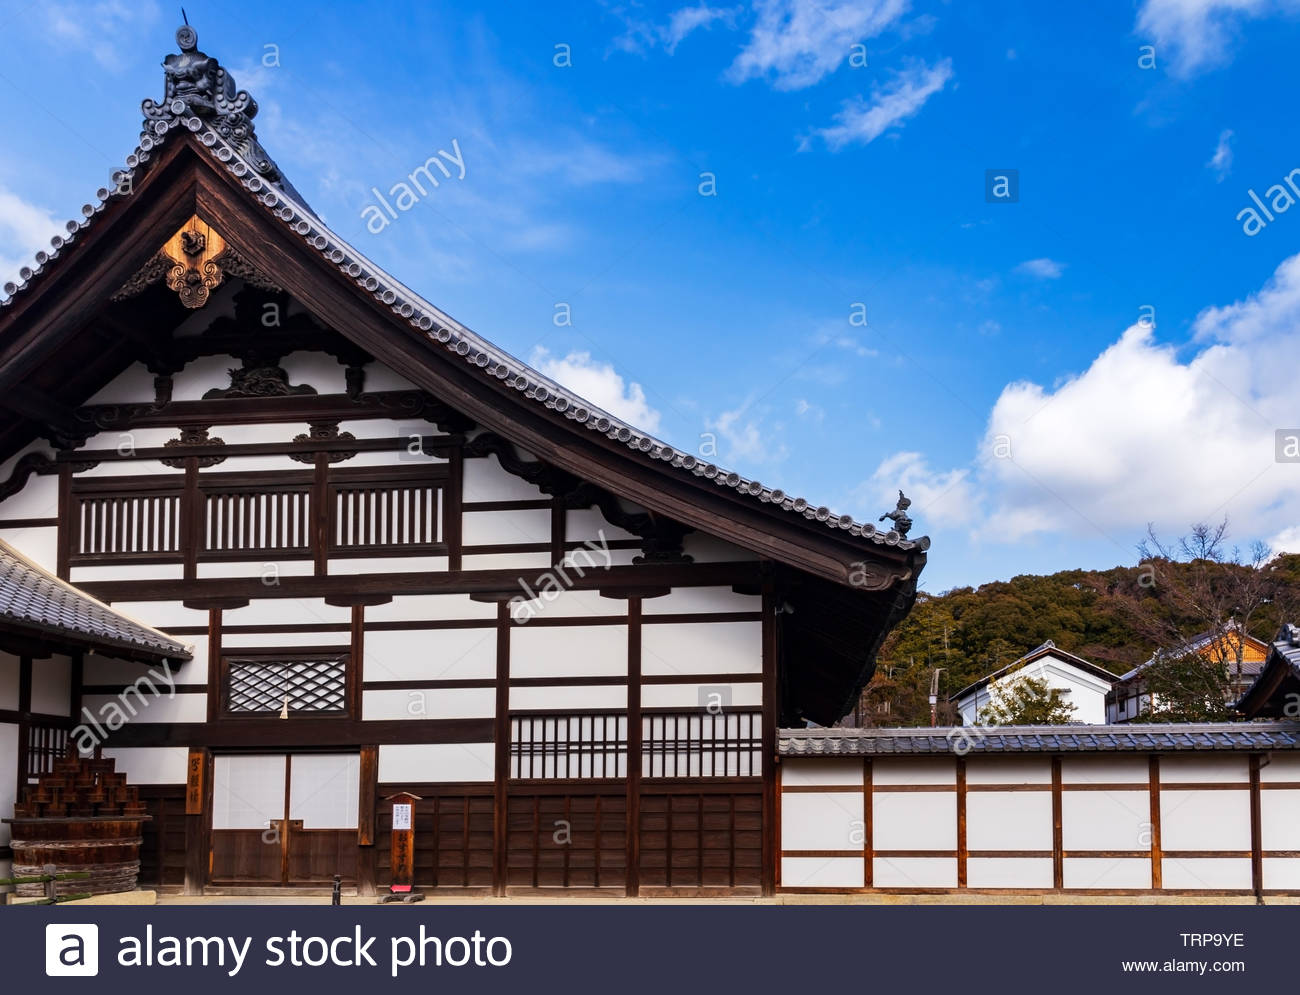 The Kuri Building from the entrance in the zen buddhism Kinkakuji temple in Kyoto, Japan.UNESCO World Heritage Site. Stock Photo